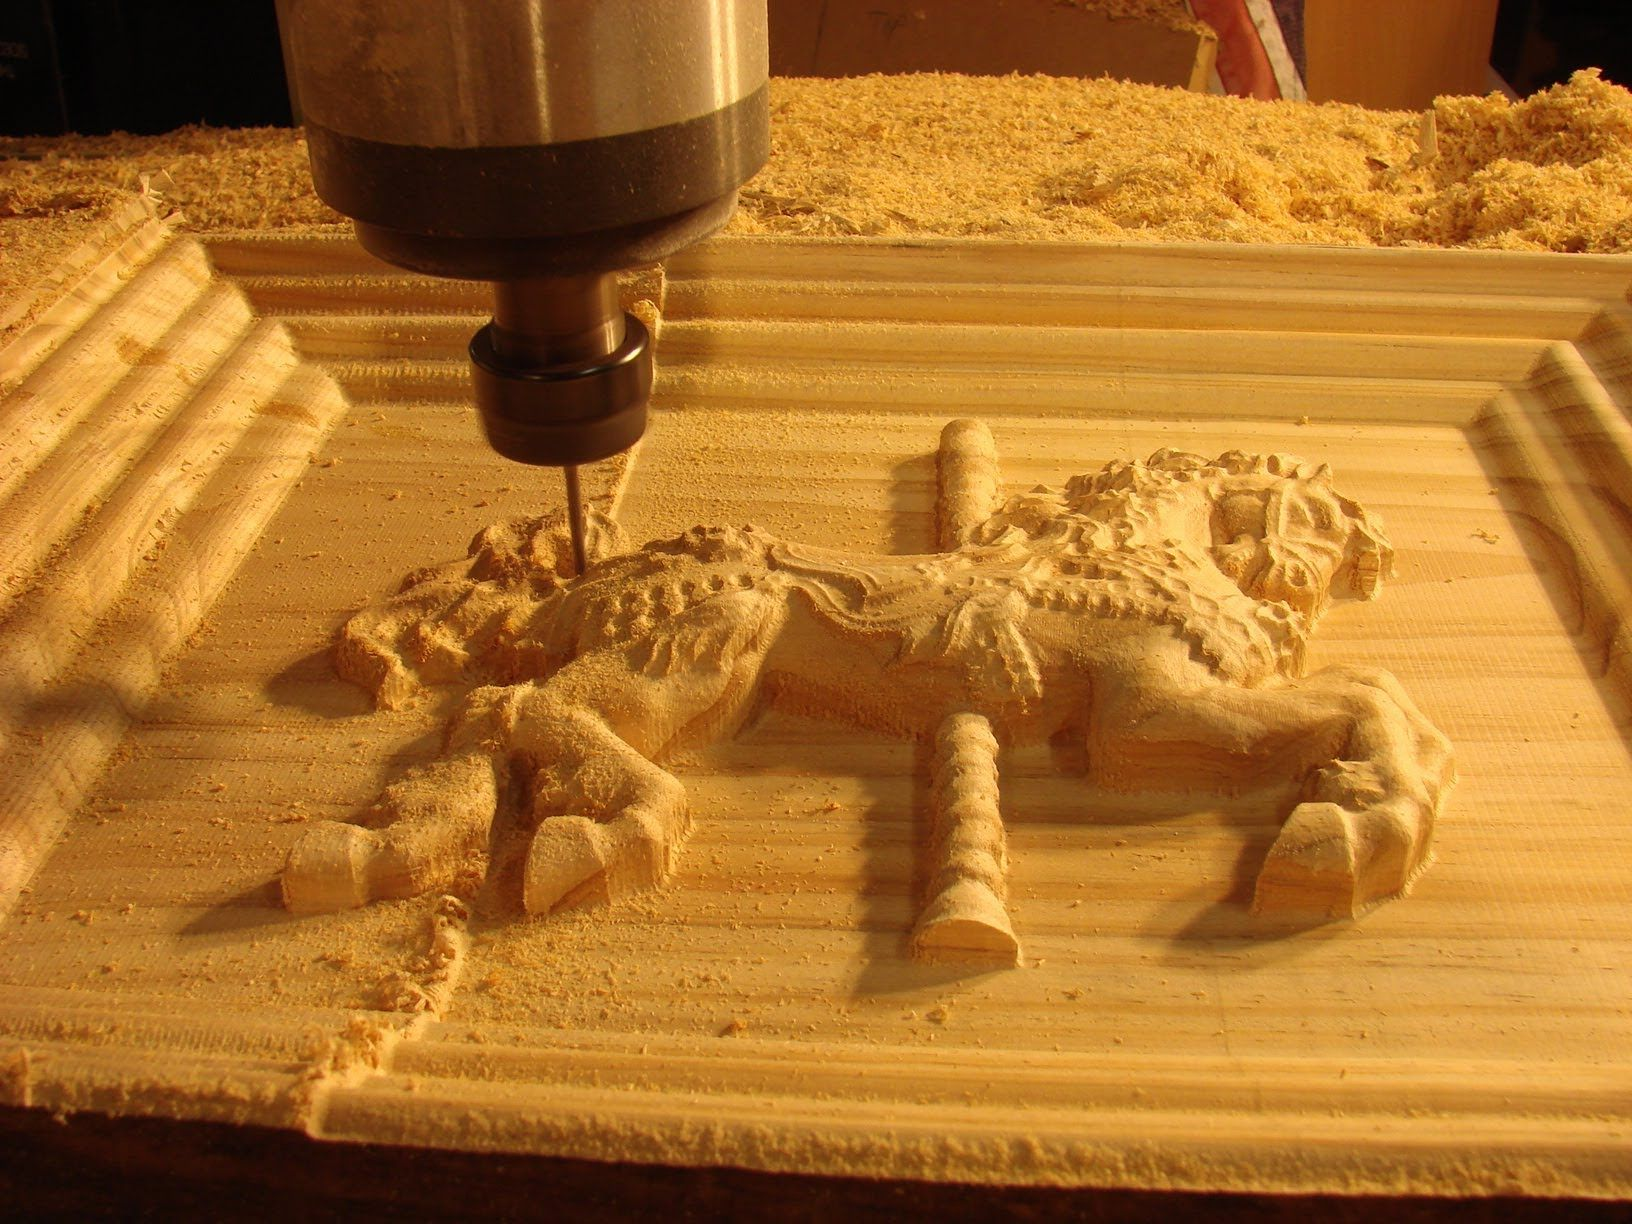 Three heads 3d relief cnc wood router china mainland wood router - A Cnc Router Tutorial Machining A 3d Fairground Horse In A Frame In Wood An Australian